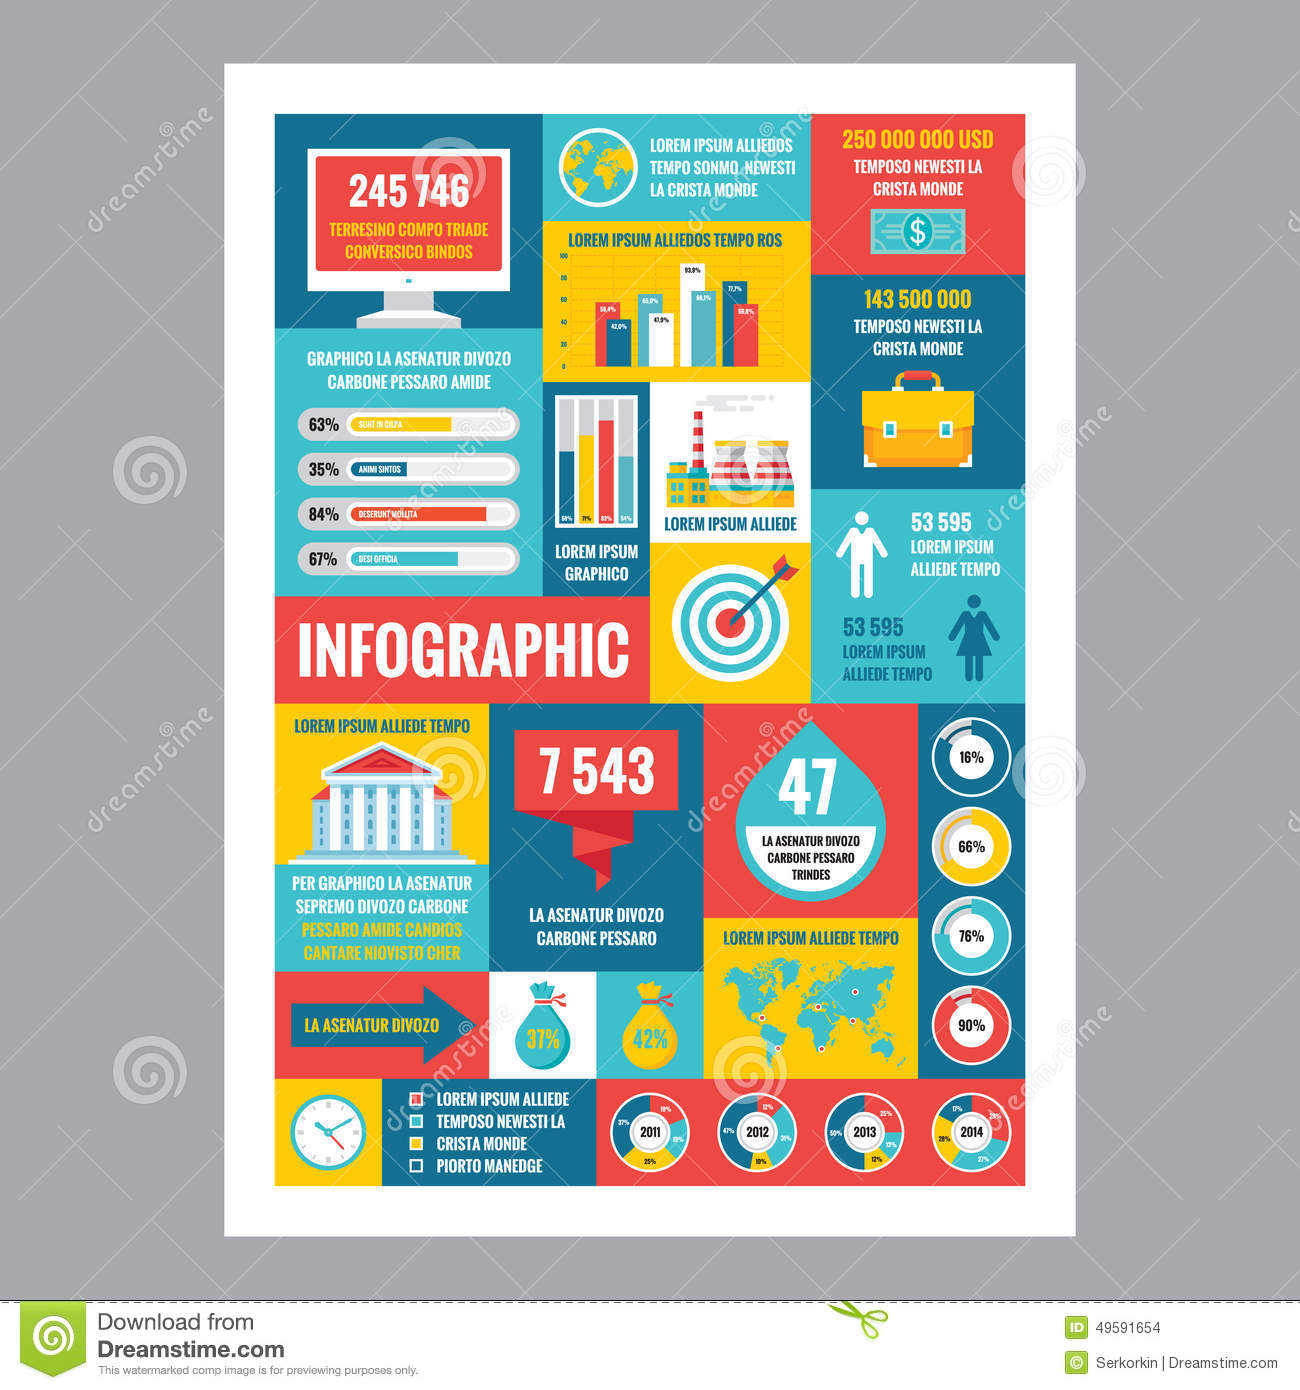 Poster design vector download - Business Infographic Mosaic Poster With Icons In Flat Design Style Vector Icons Set